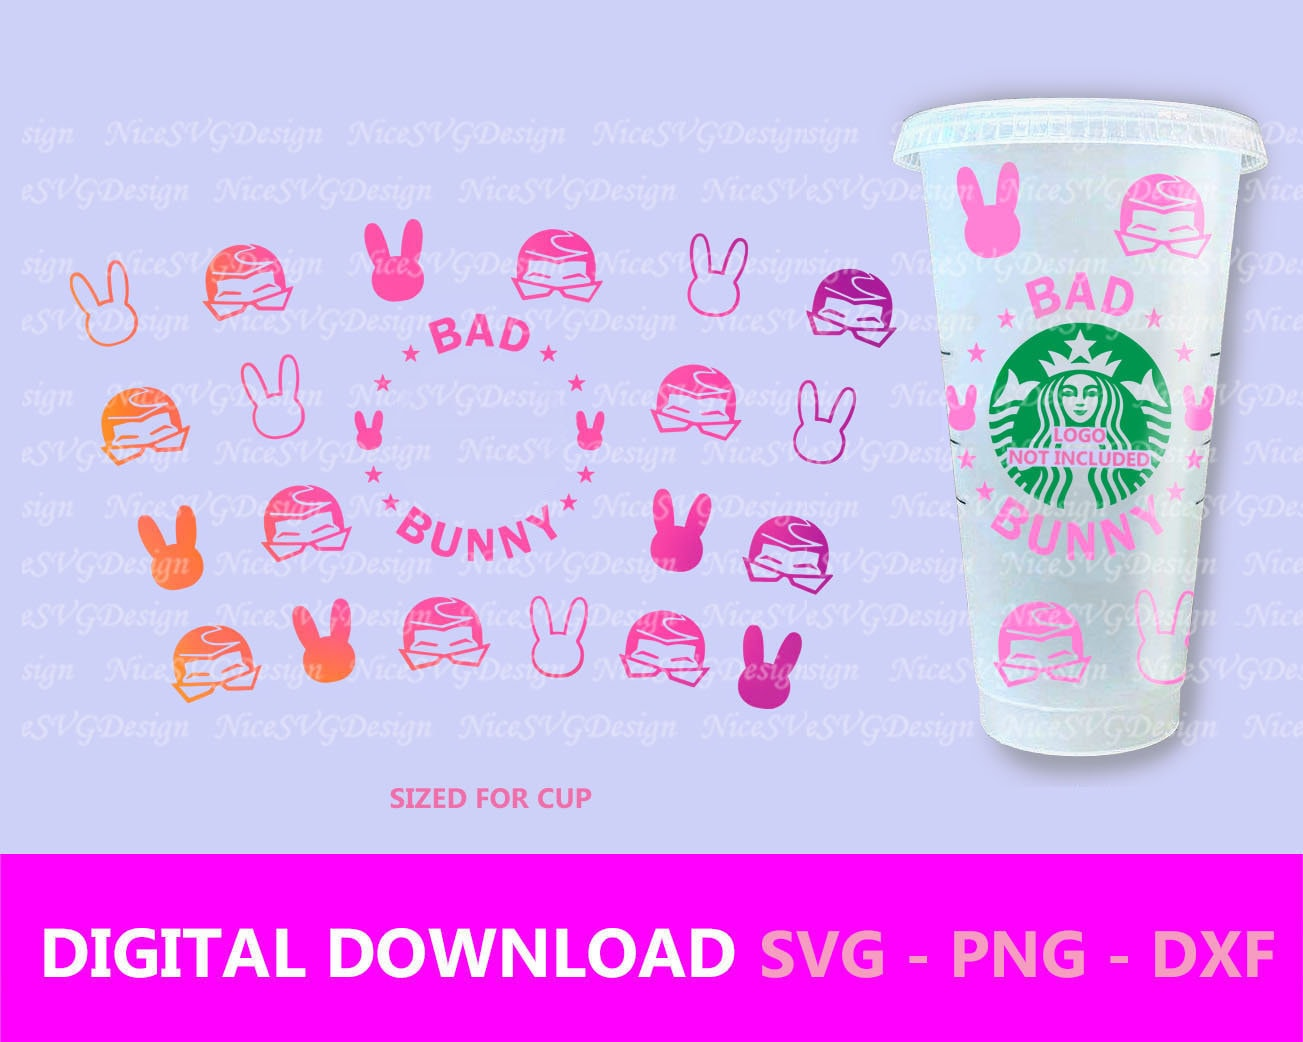 Mugs png Silhouette Snake Starbucks wrap Venti 24 Oz Cup Poster svg Best for DTG Invitation etc dxf files Cricut T-shirt